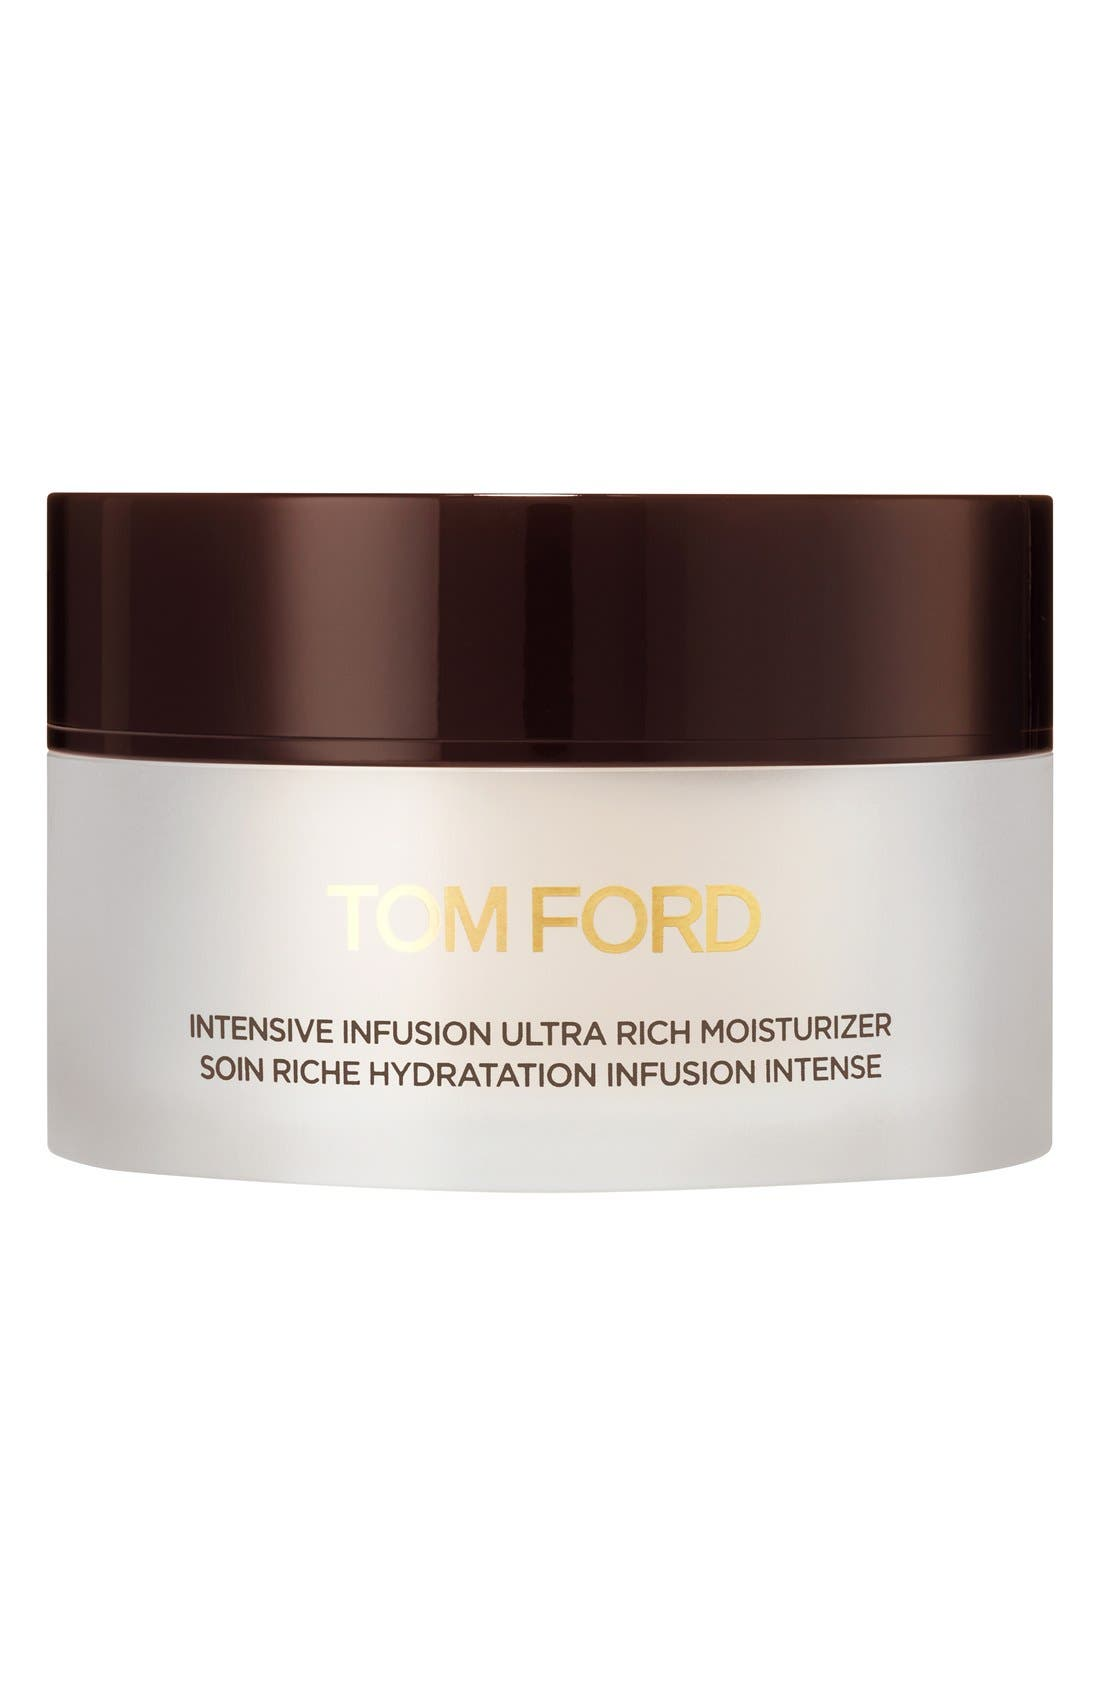 Tom Ford 'Intensive Infusion' Ultra-Rich Moisturizer